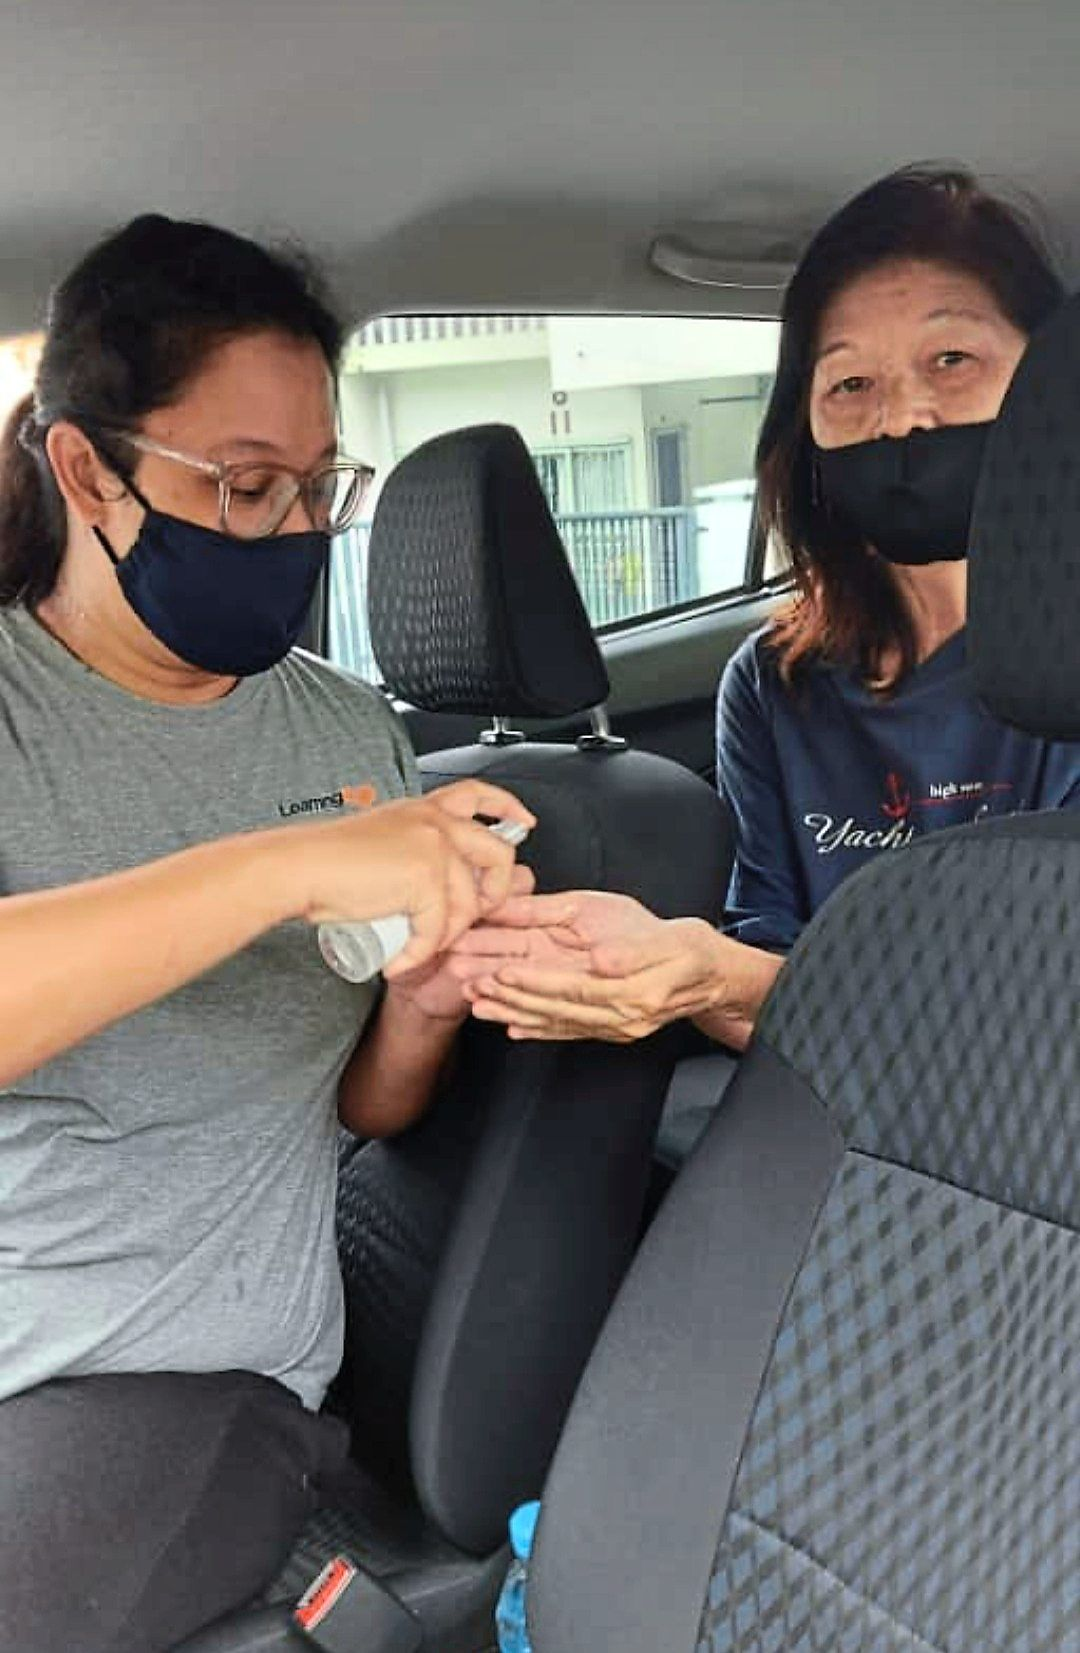 With a mask and hand sanitiser, Li (right) is better protected against Covid-19.